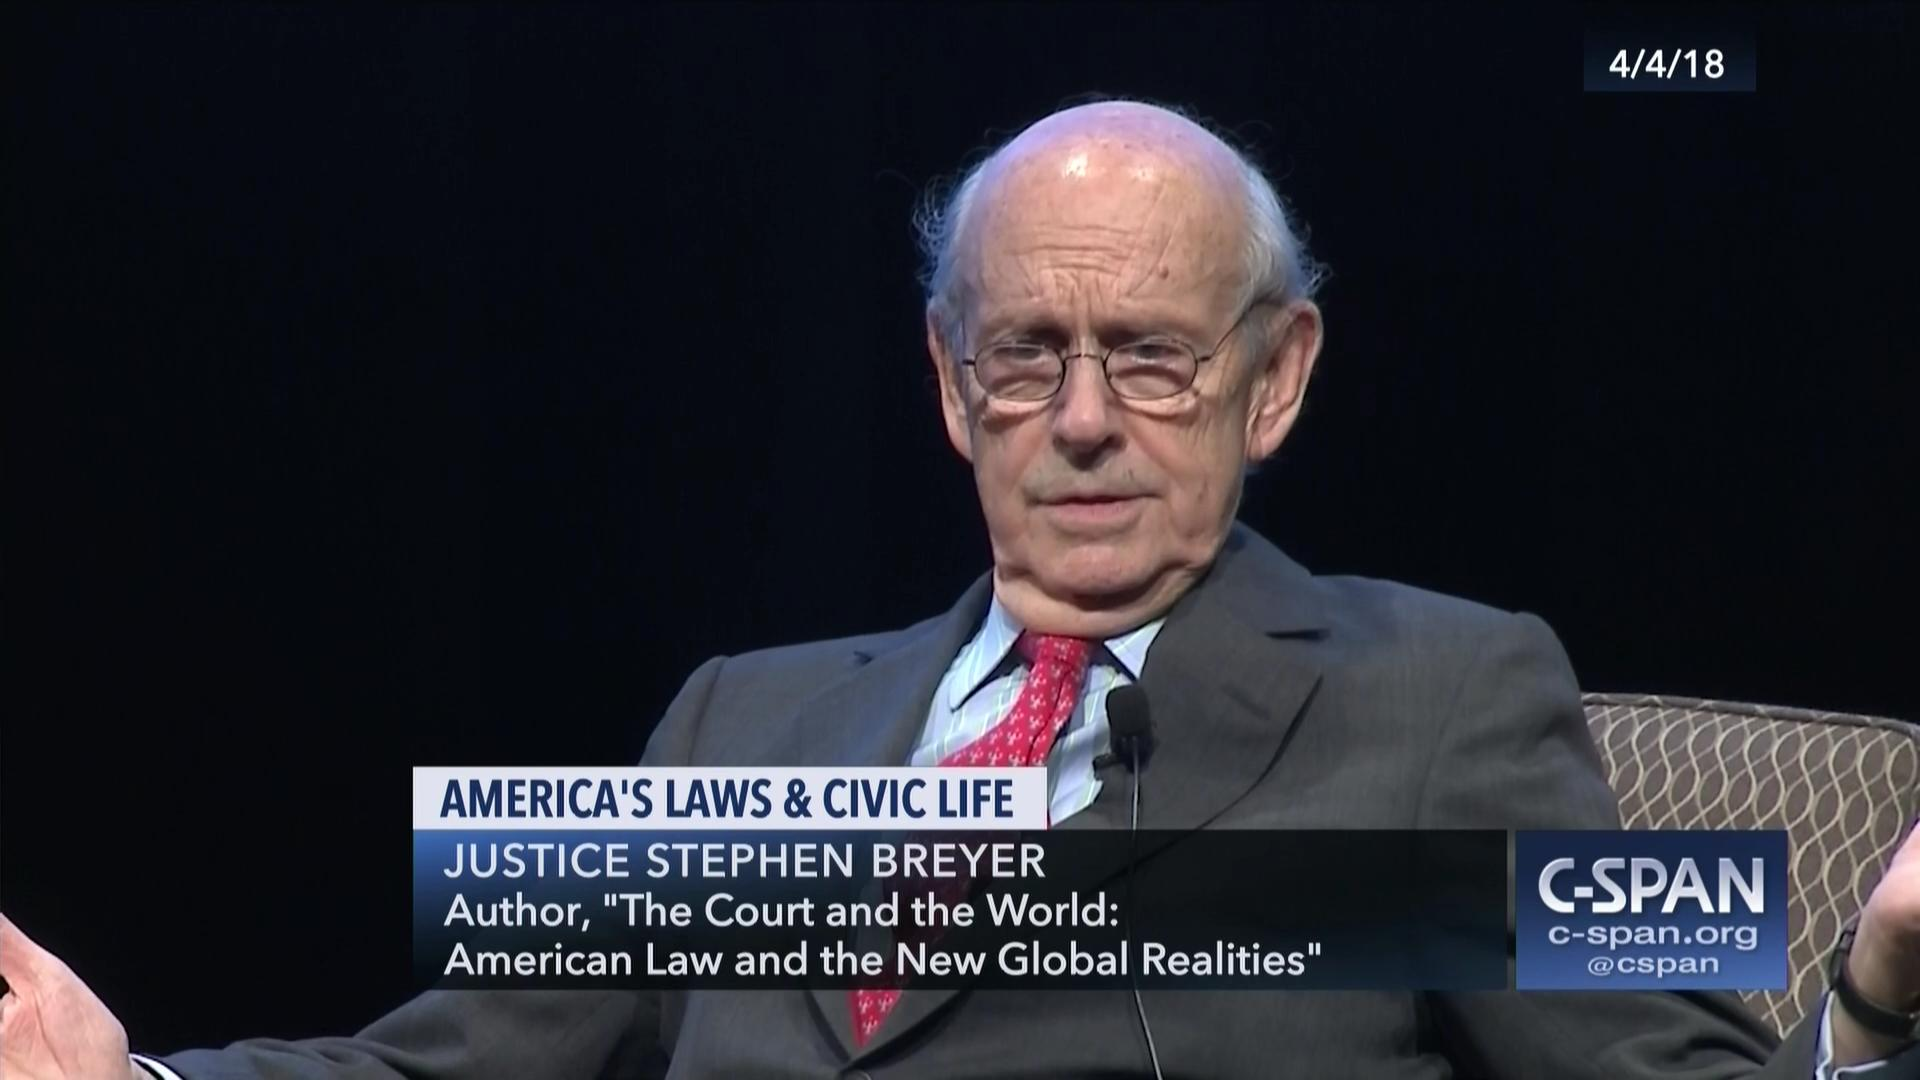 Justice Stephen Breyer On America S Laws And Civil Life C Span Org